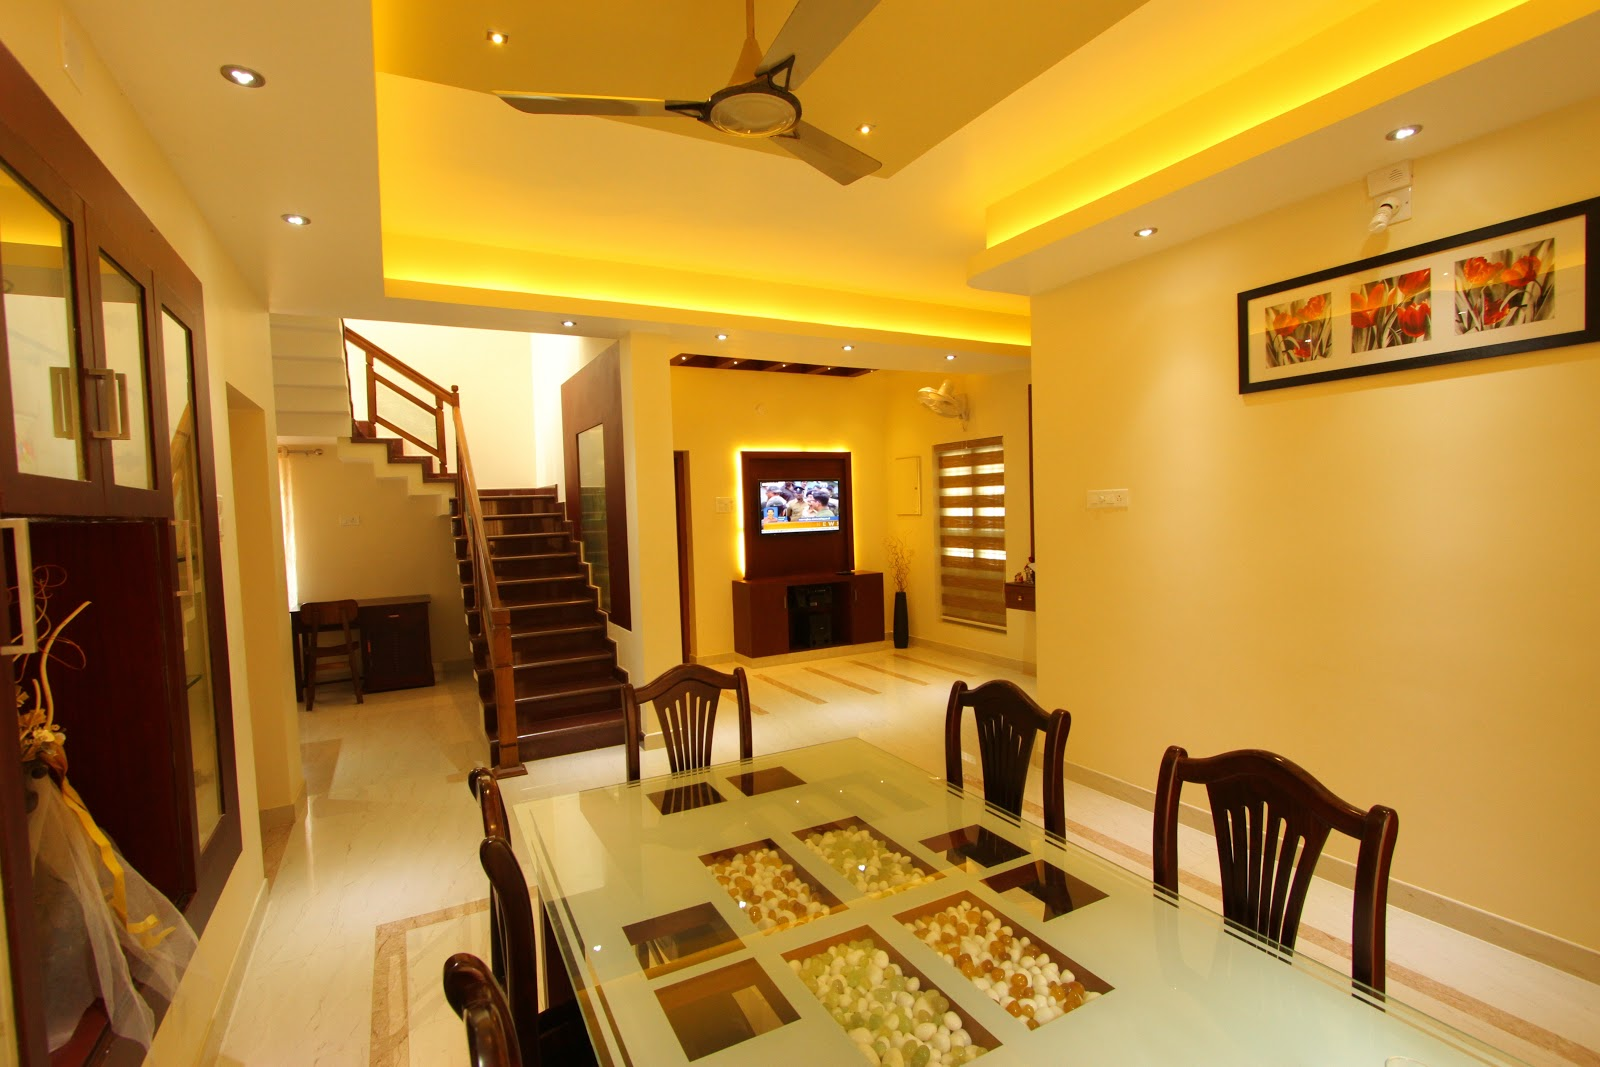 Shilpakala interiors award winning home interior design by shilpakala interiors - Interior designers ...